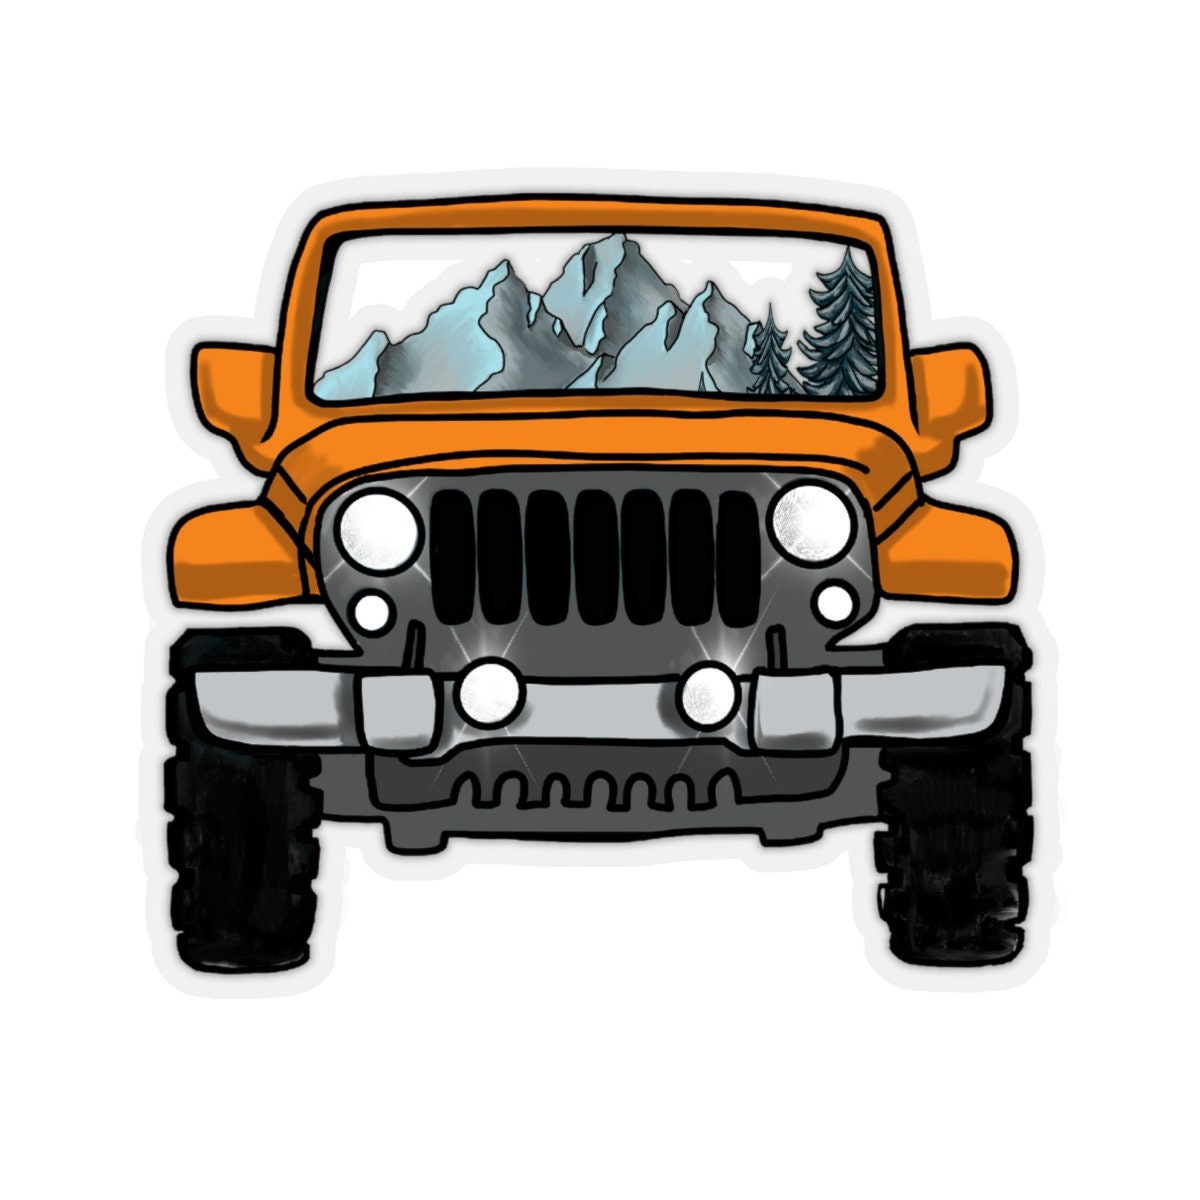 Orange jeep sticker jeep life jeep wrangler hydroflask stickers jeep sticker orange stickers